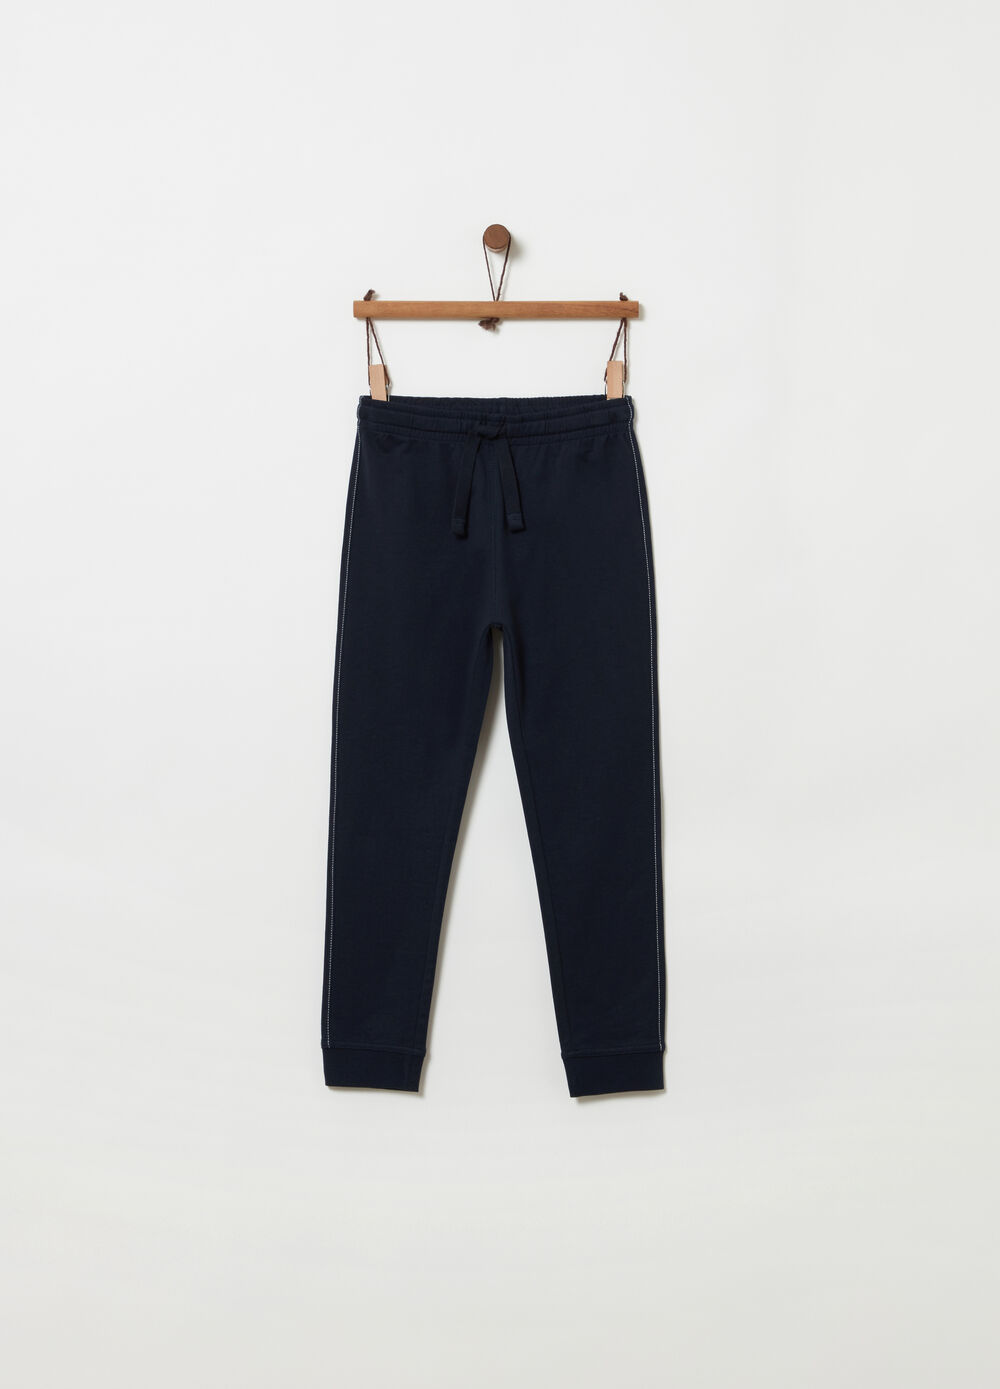 Trousers with drawstring and stitching